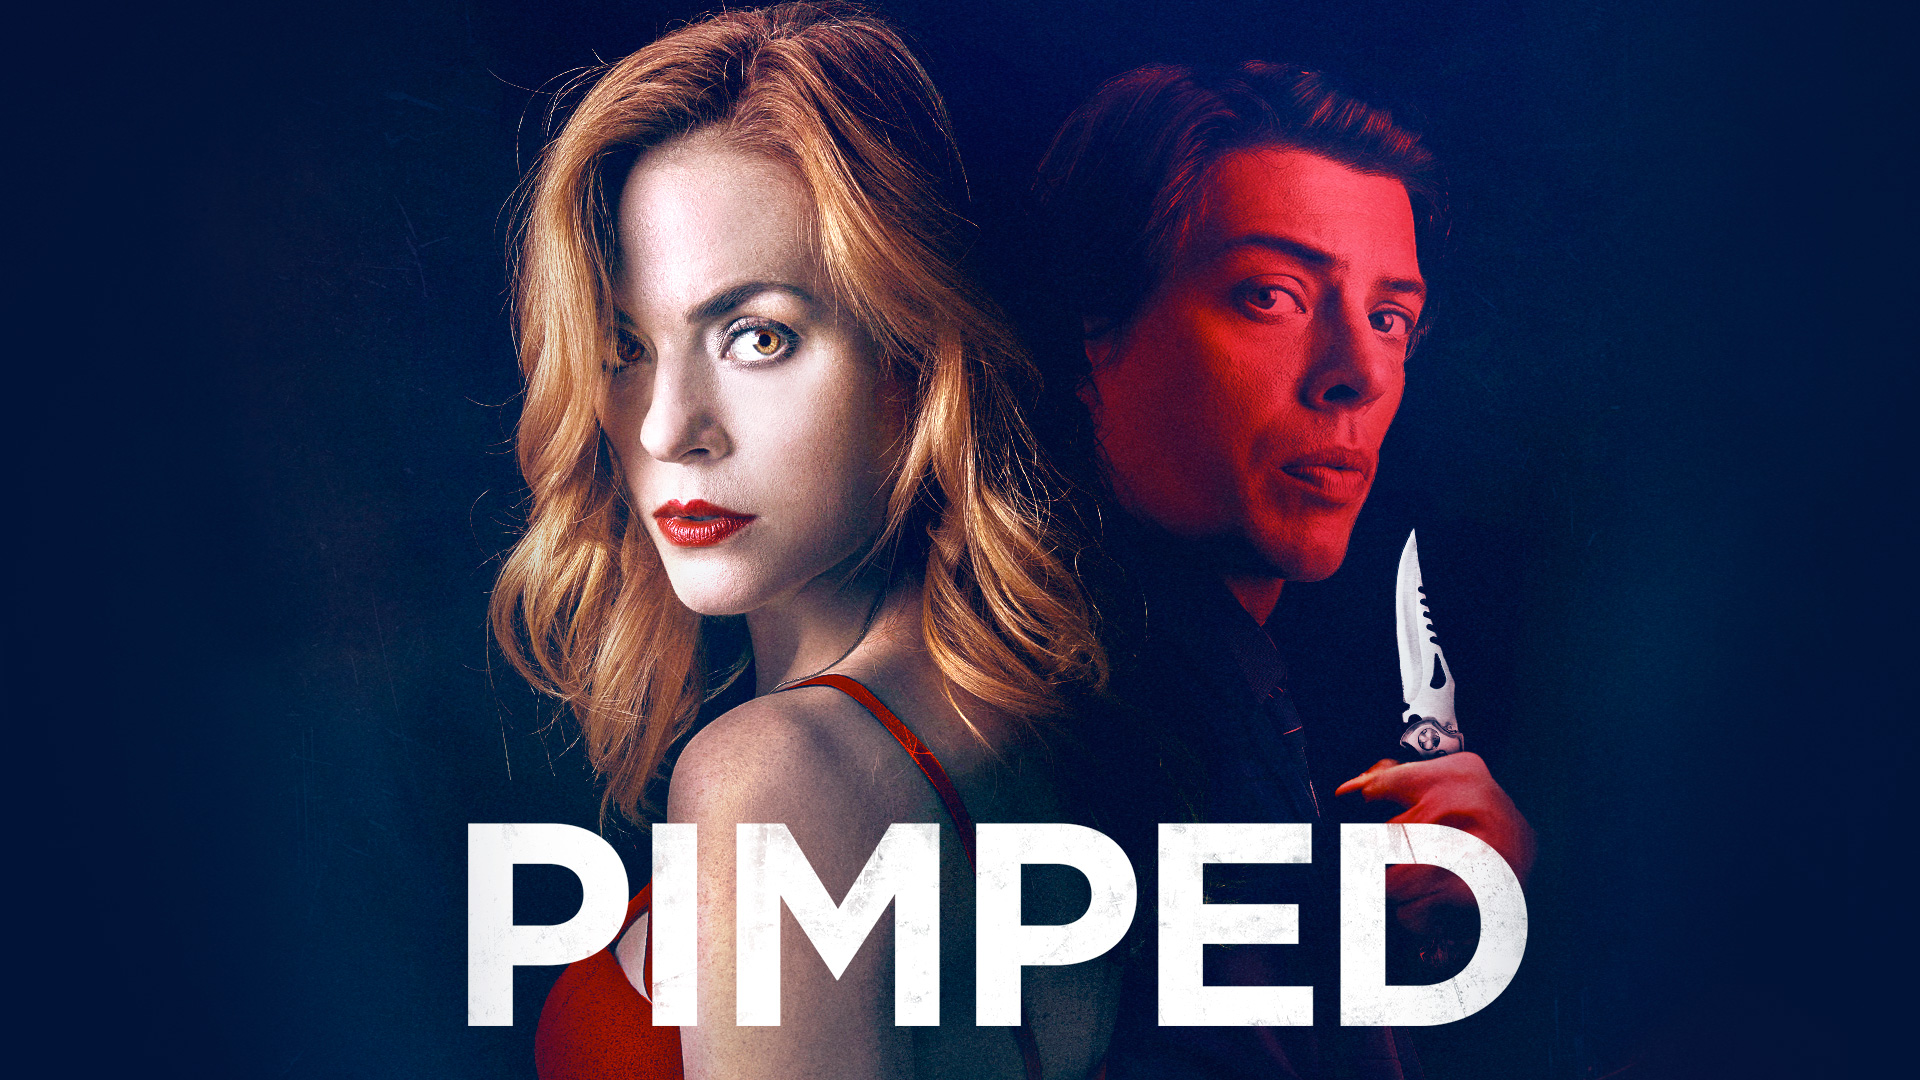 Pimped on Amazon Prime Instant Video UK